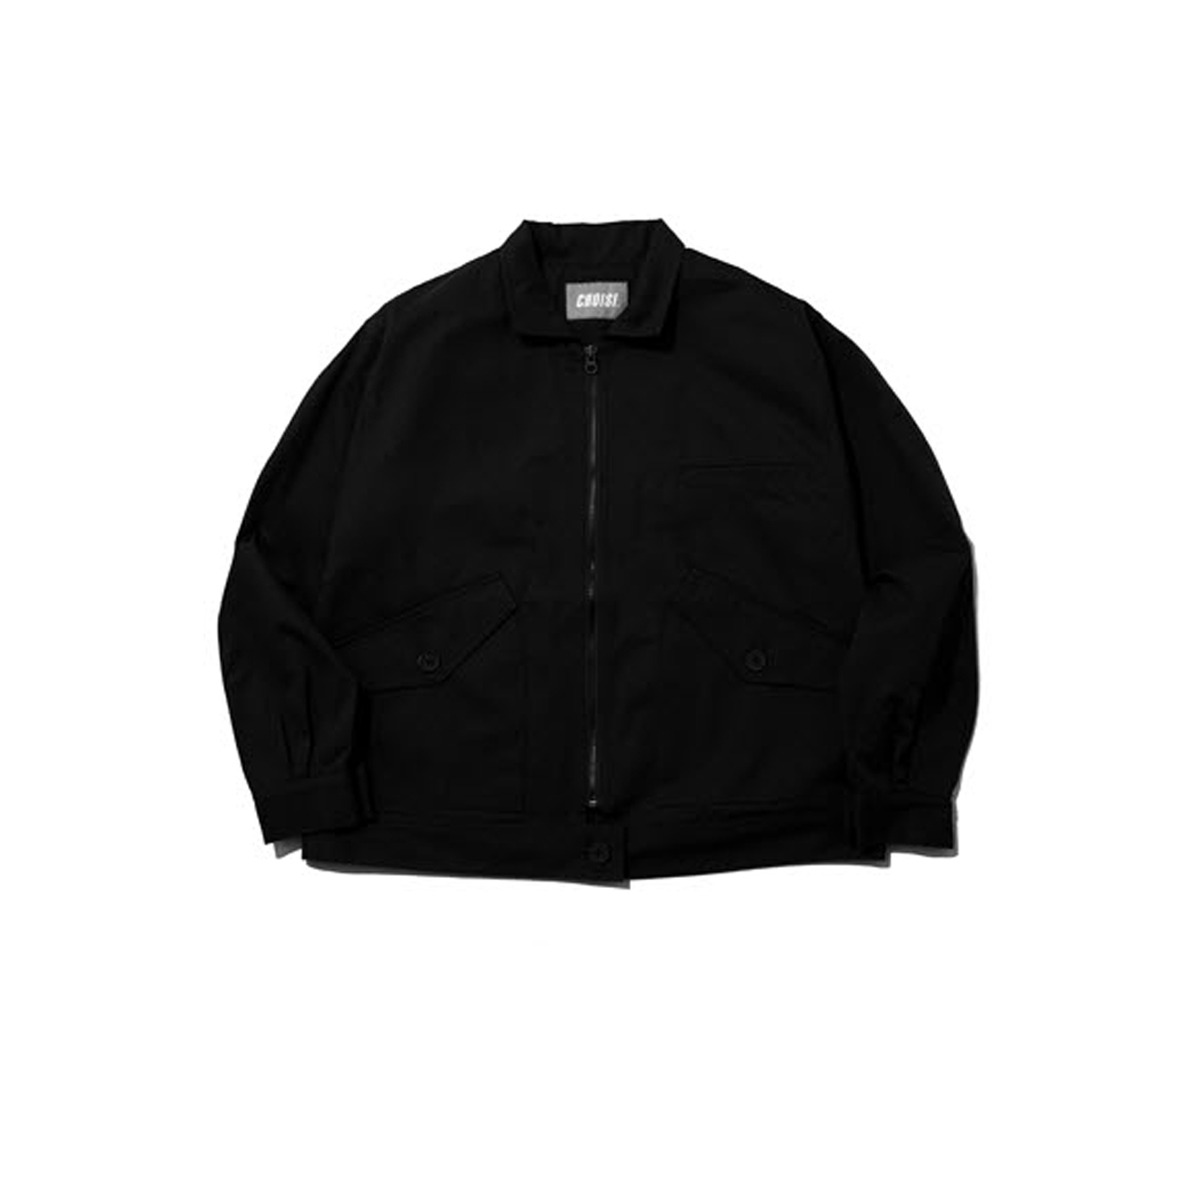 Primary Trucker Jacket, Black